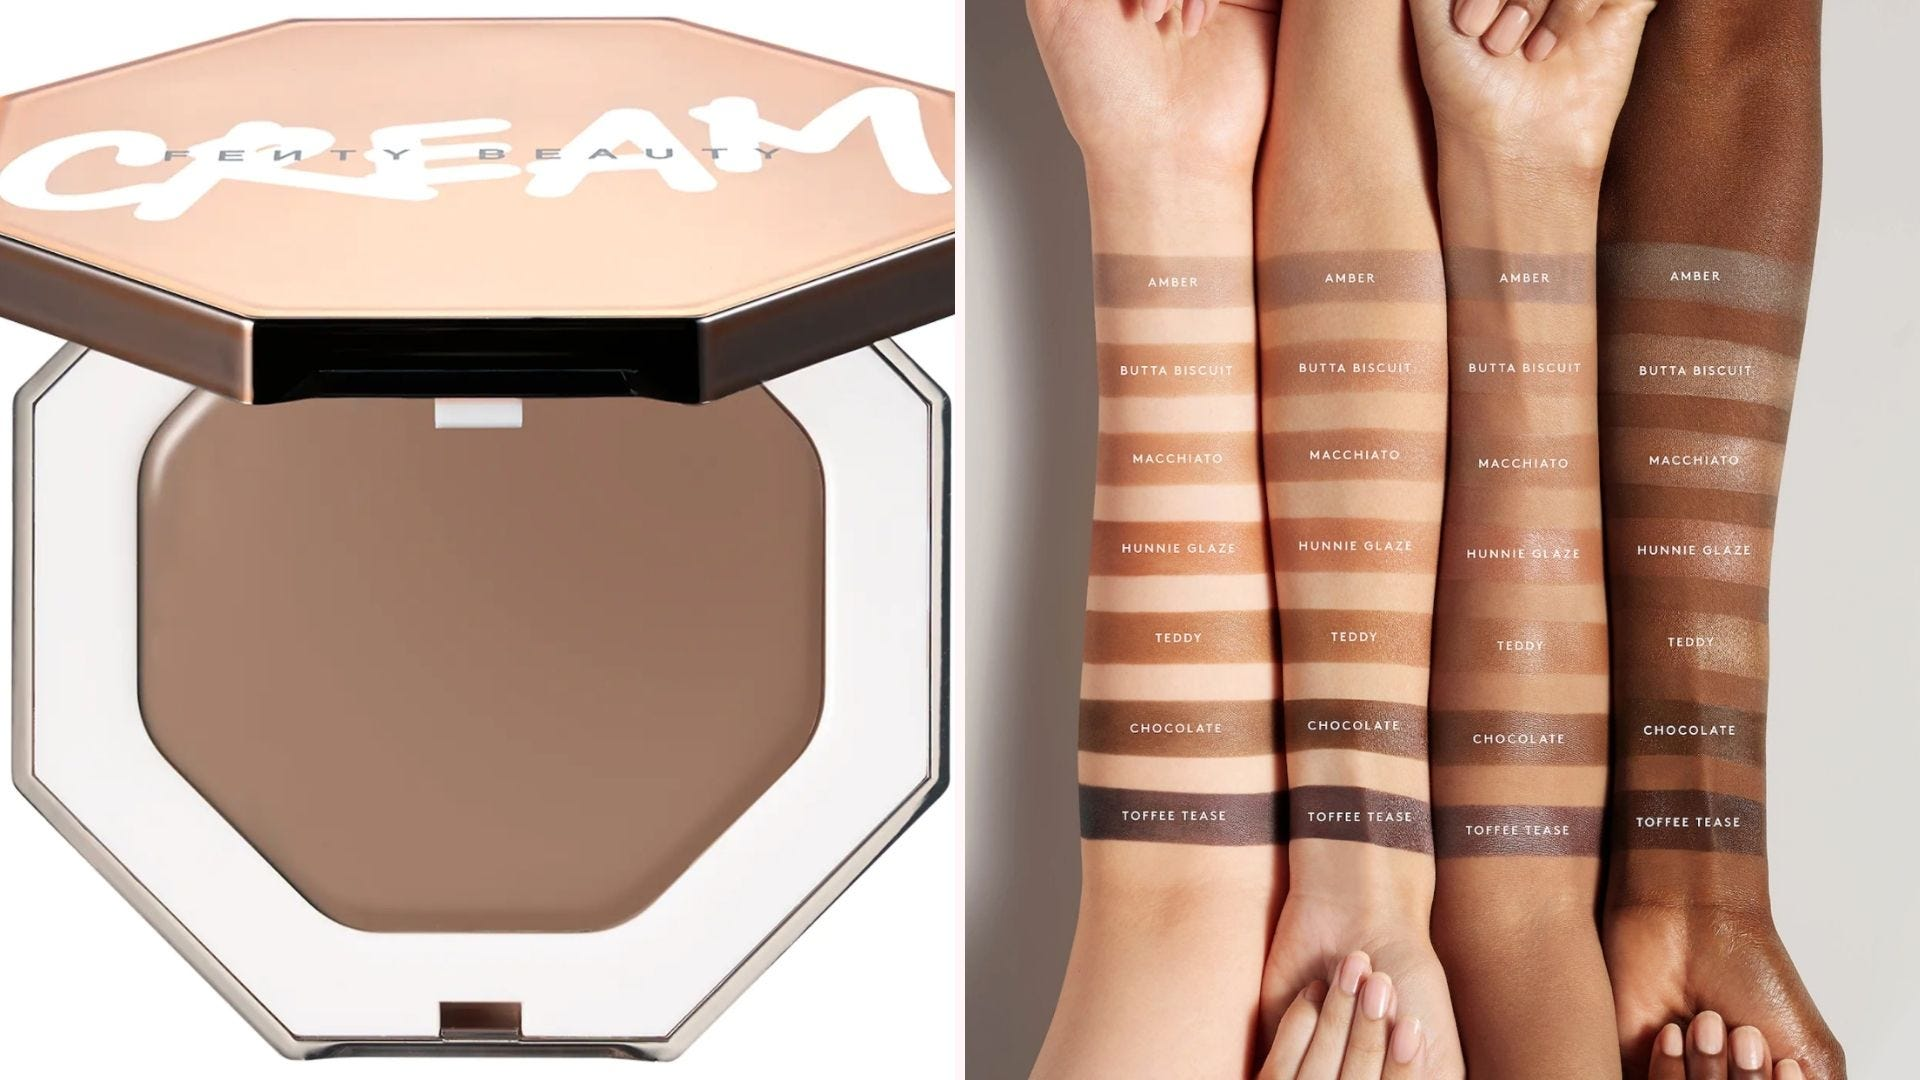 On the left, a Fenty cream bronzer on a white background, and on the right, forearm swatches of Fenty bronzer shades on four different skin tones.